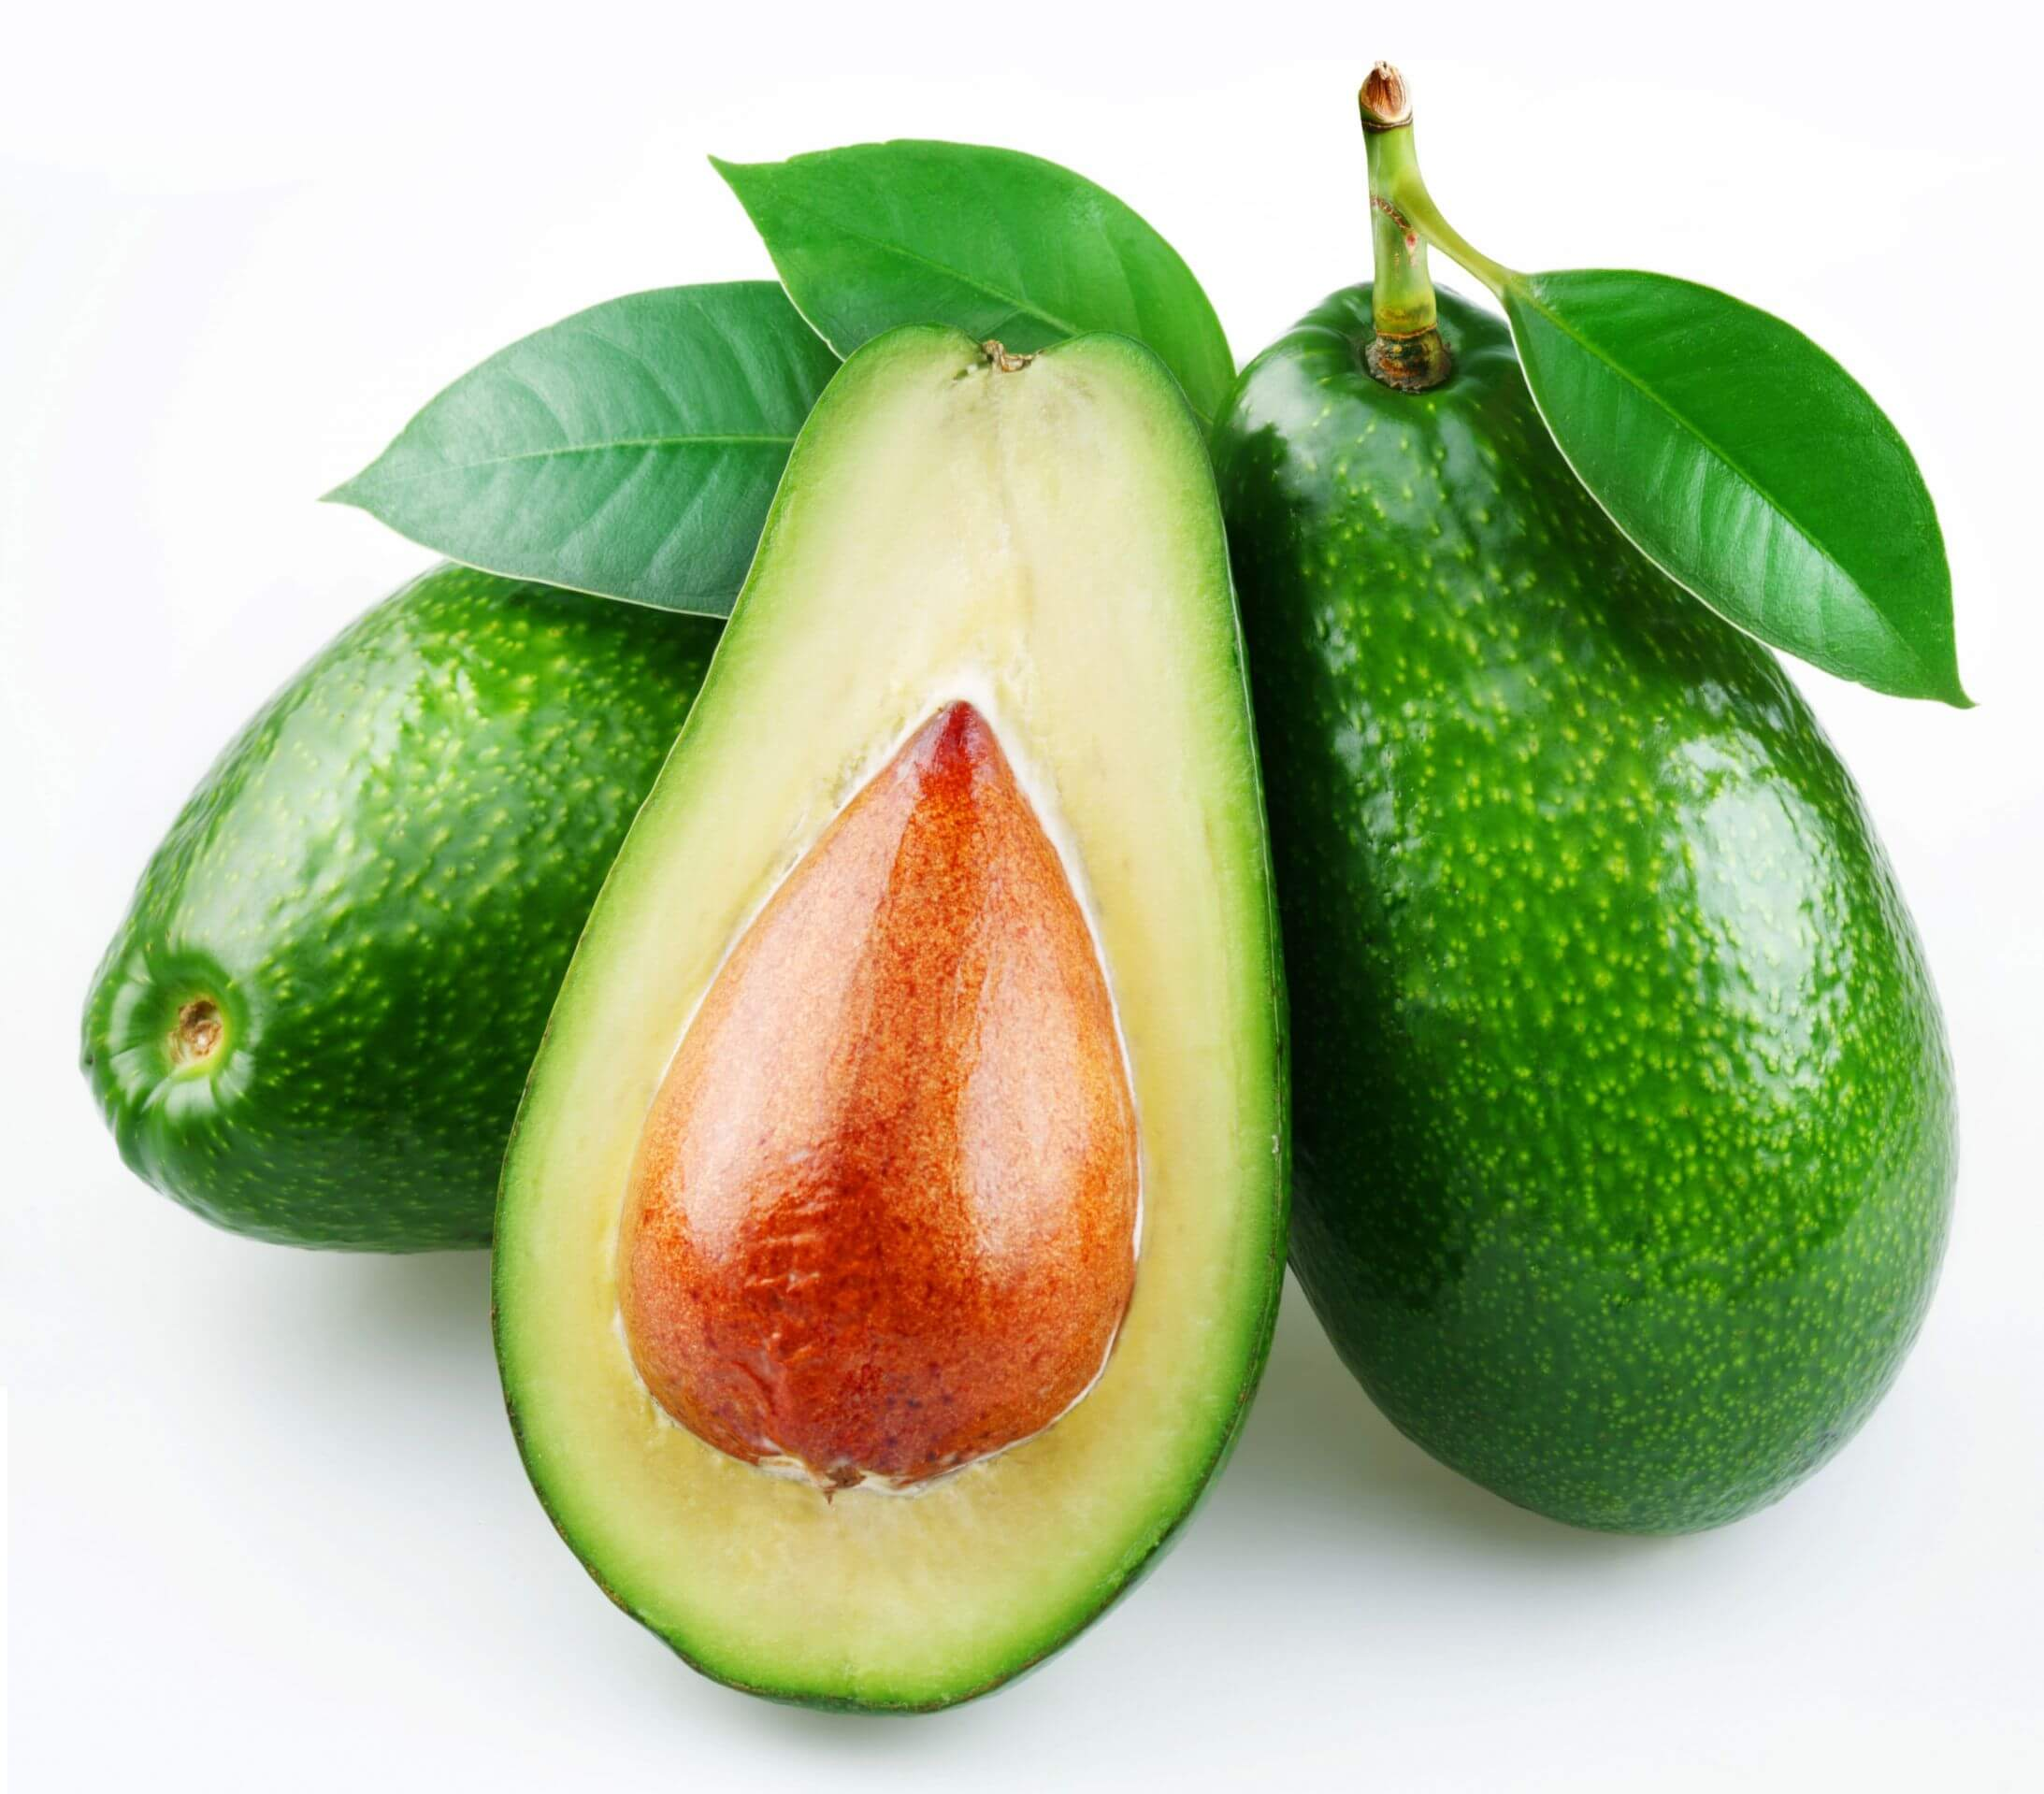 Avocado widescreen for desktop